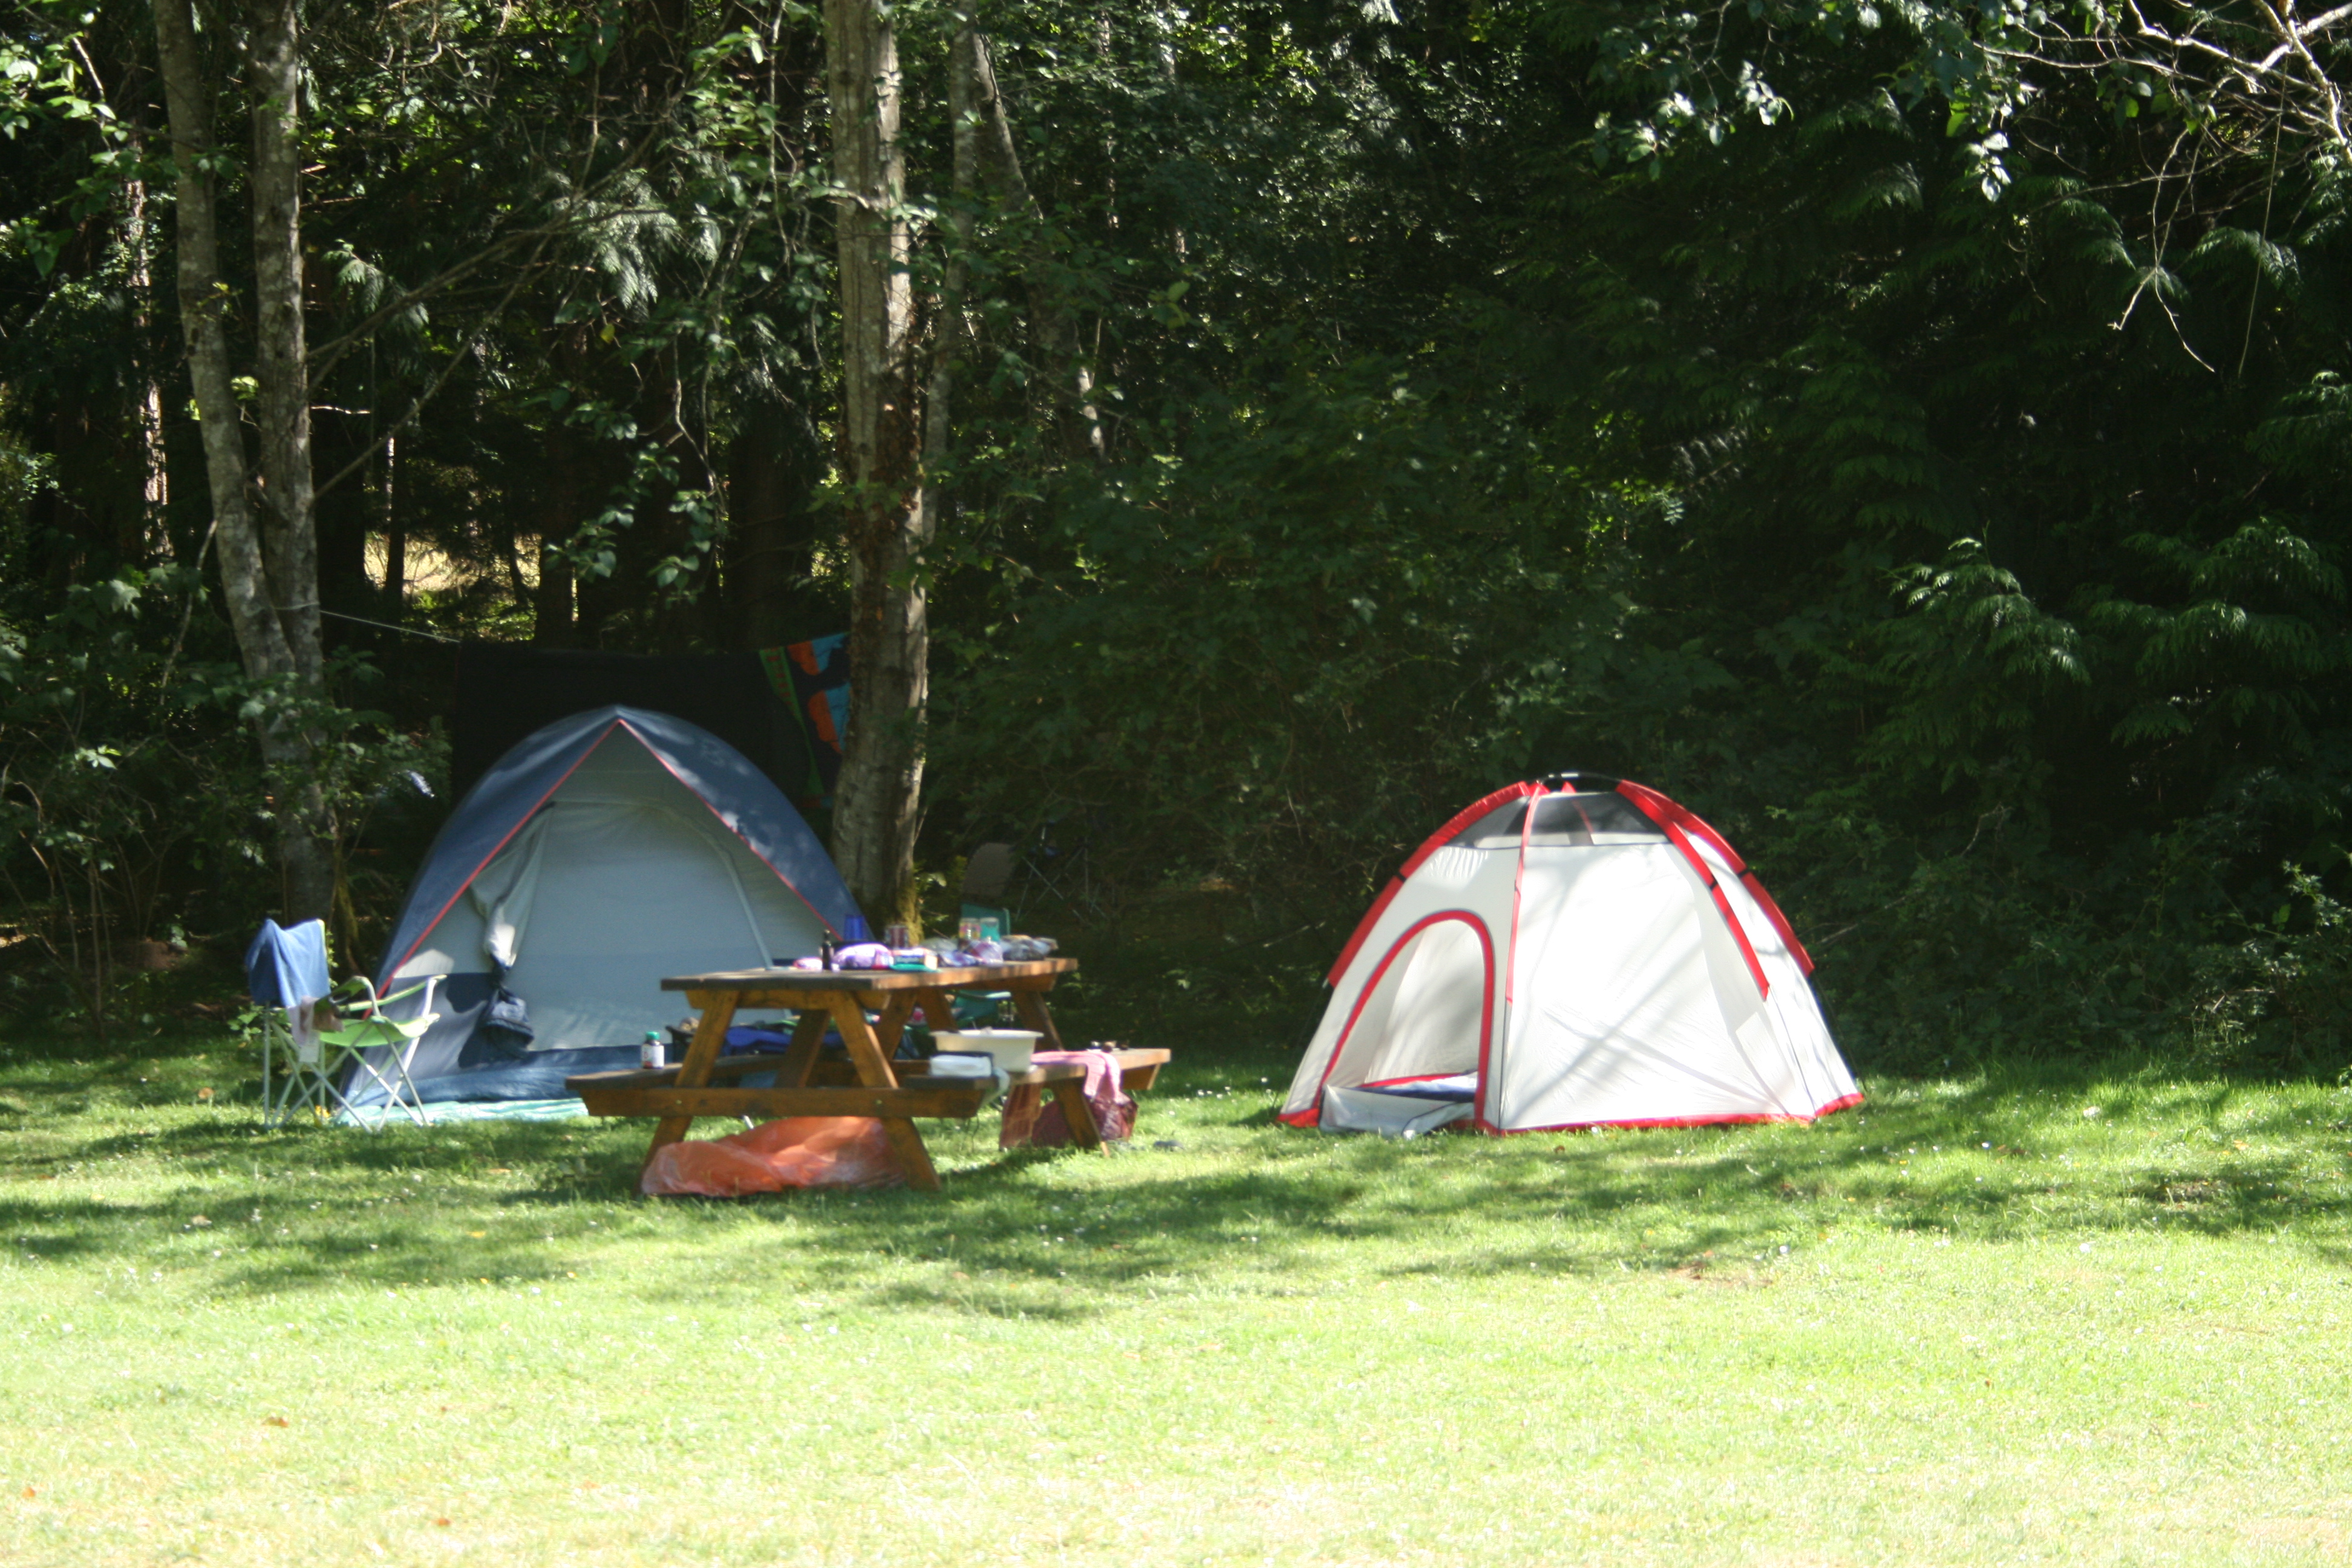 Sites for recreational vehicles and tents